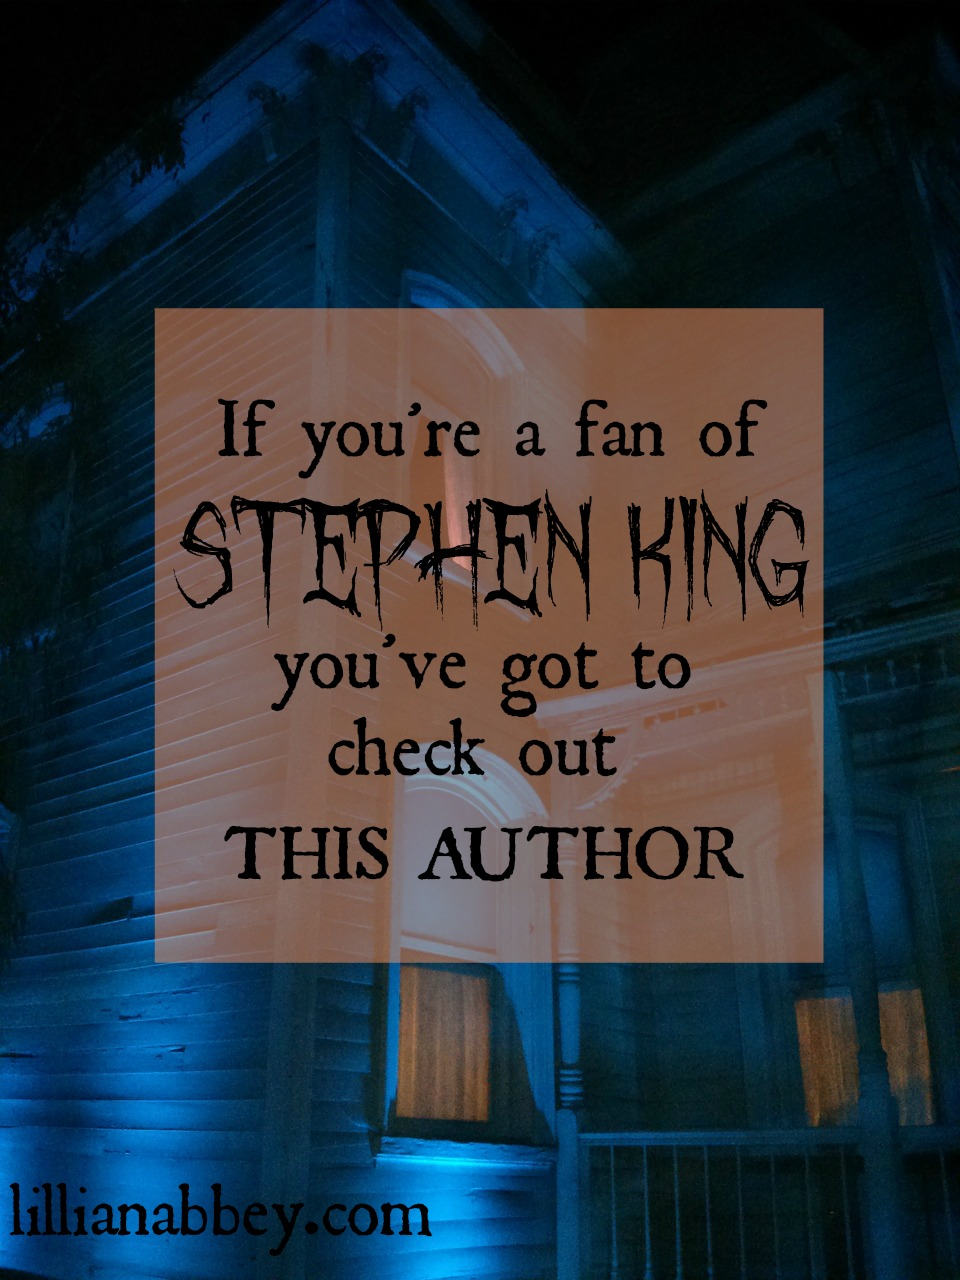 If you love Stephen King, you'll love this author!